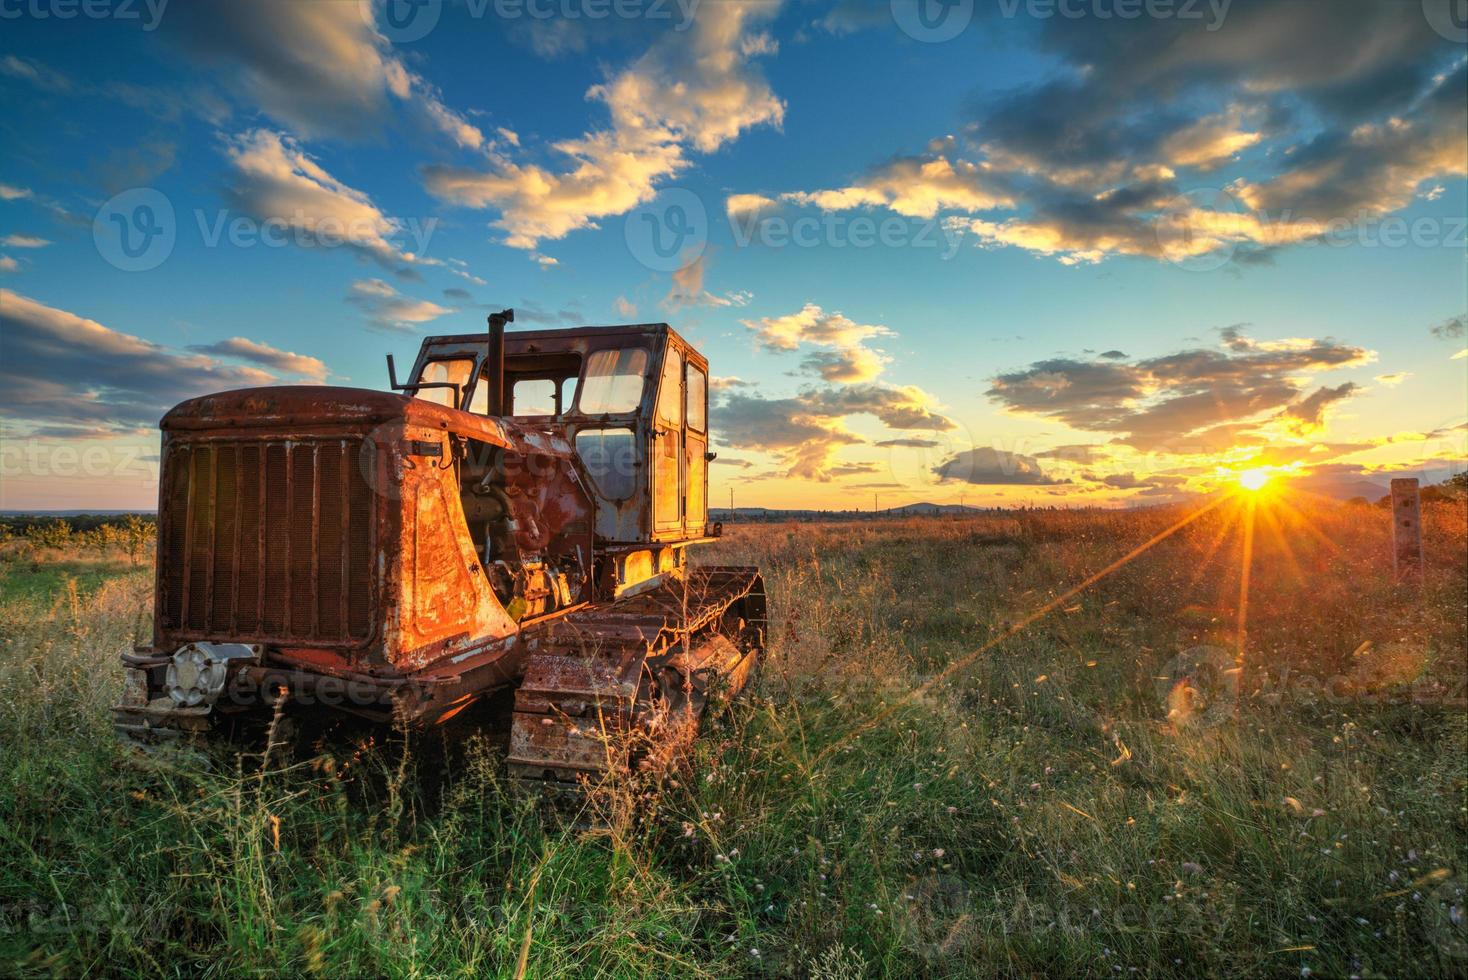 Old rusty tractor in a field on sunset photo